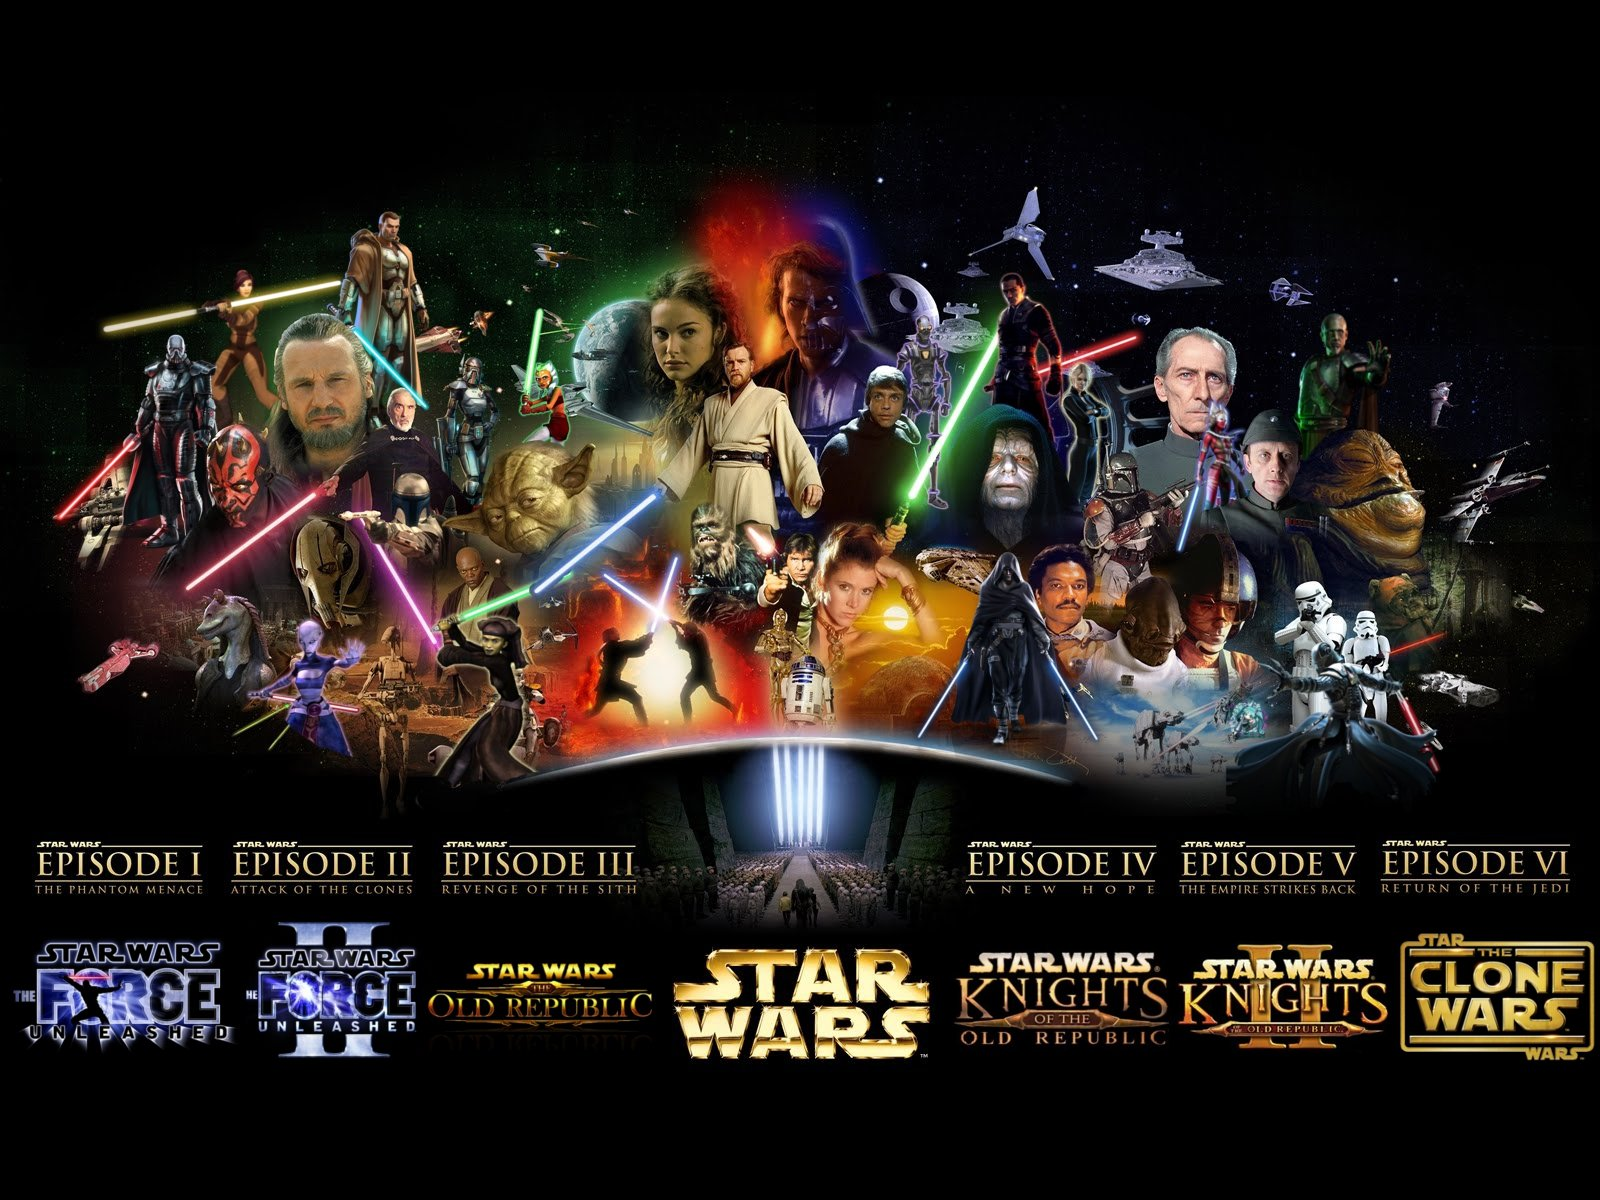 Free Download Largest Collection Of Star Wars Wallpapers For Download 1600x1200 For Your Desktop Mobile Tablet Explore 49 Free Star Wars Wallpaper Downloads Star Wars Wallpaper 1080p Star Wars